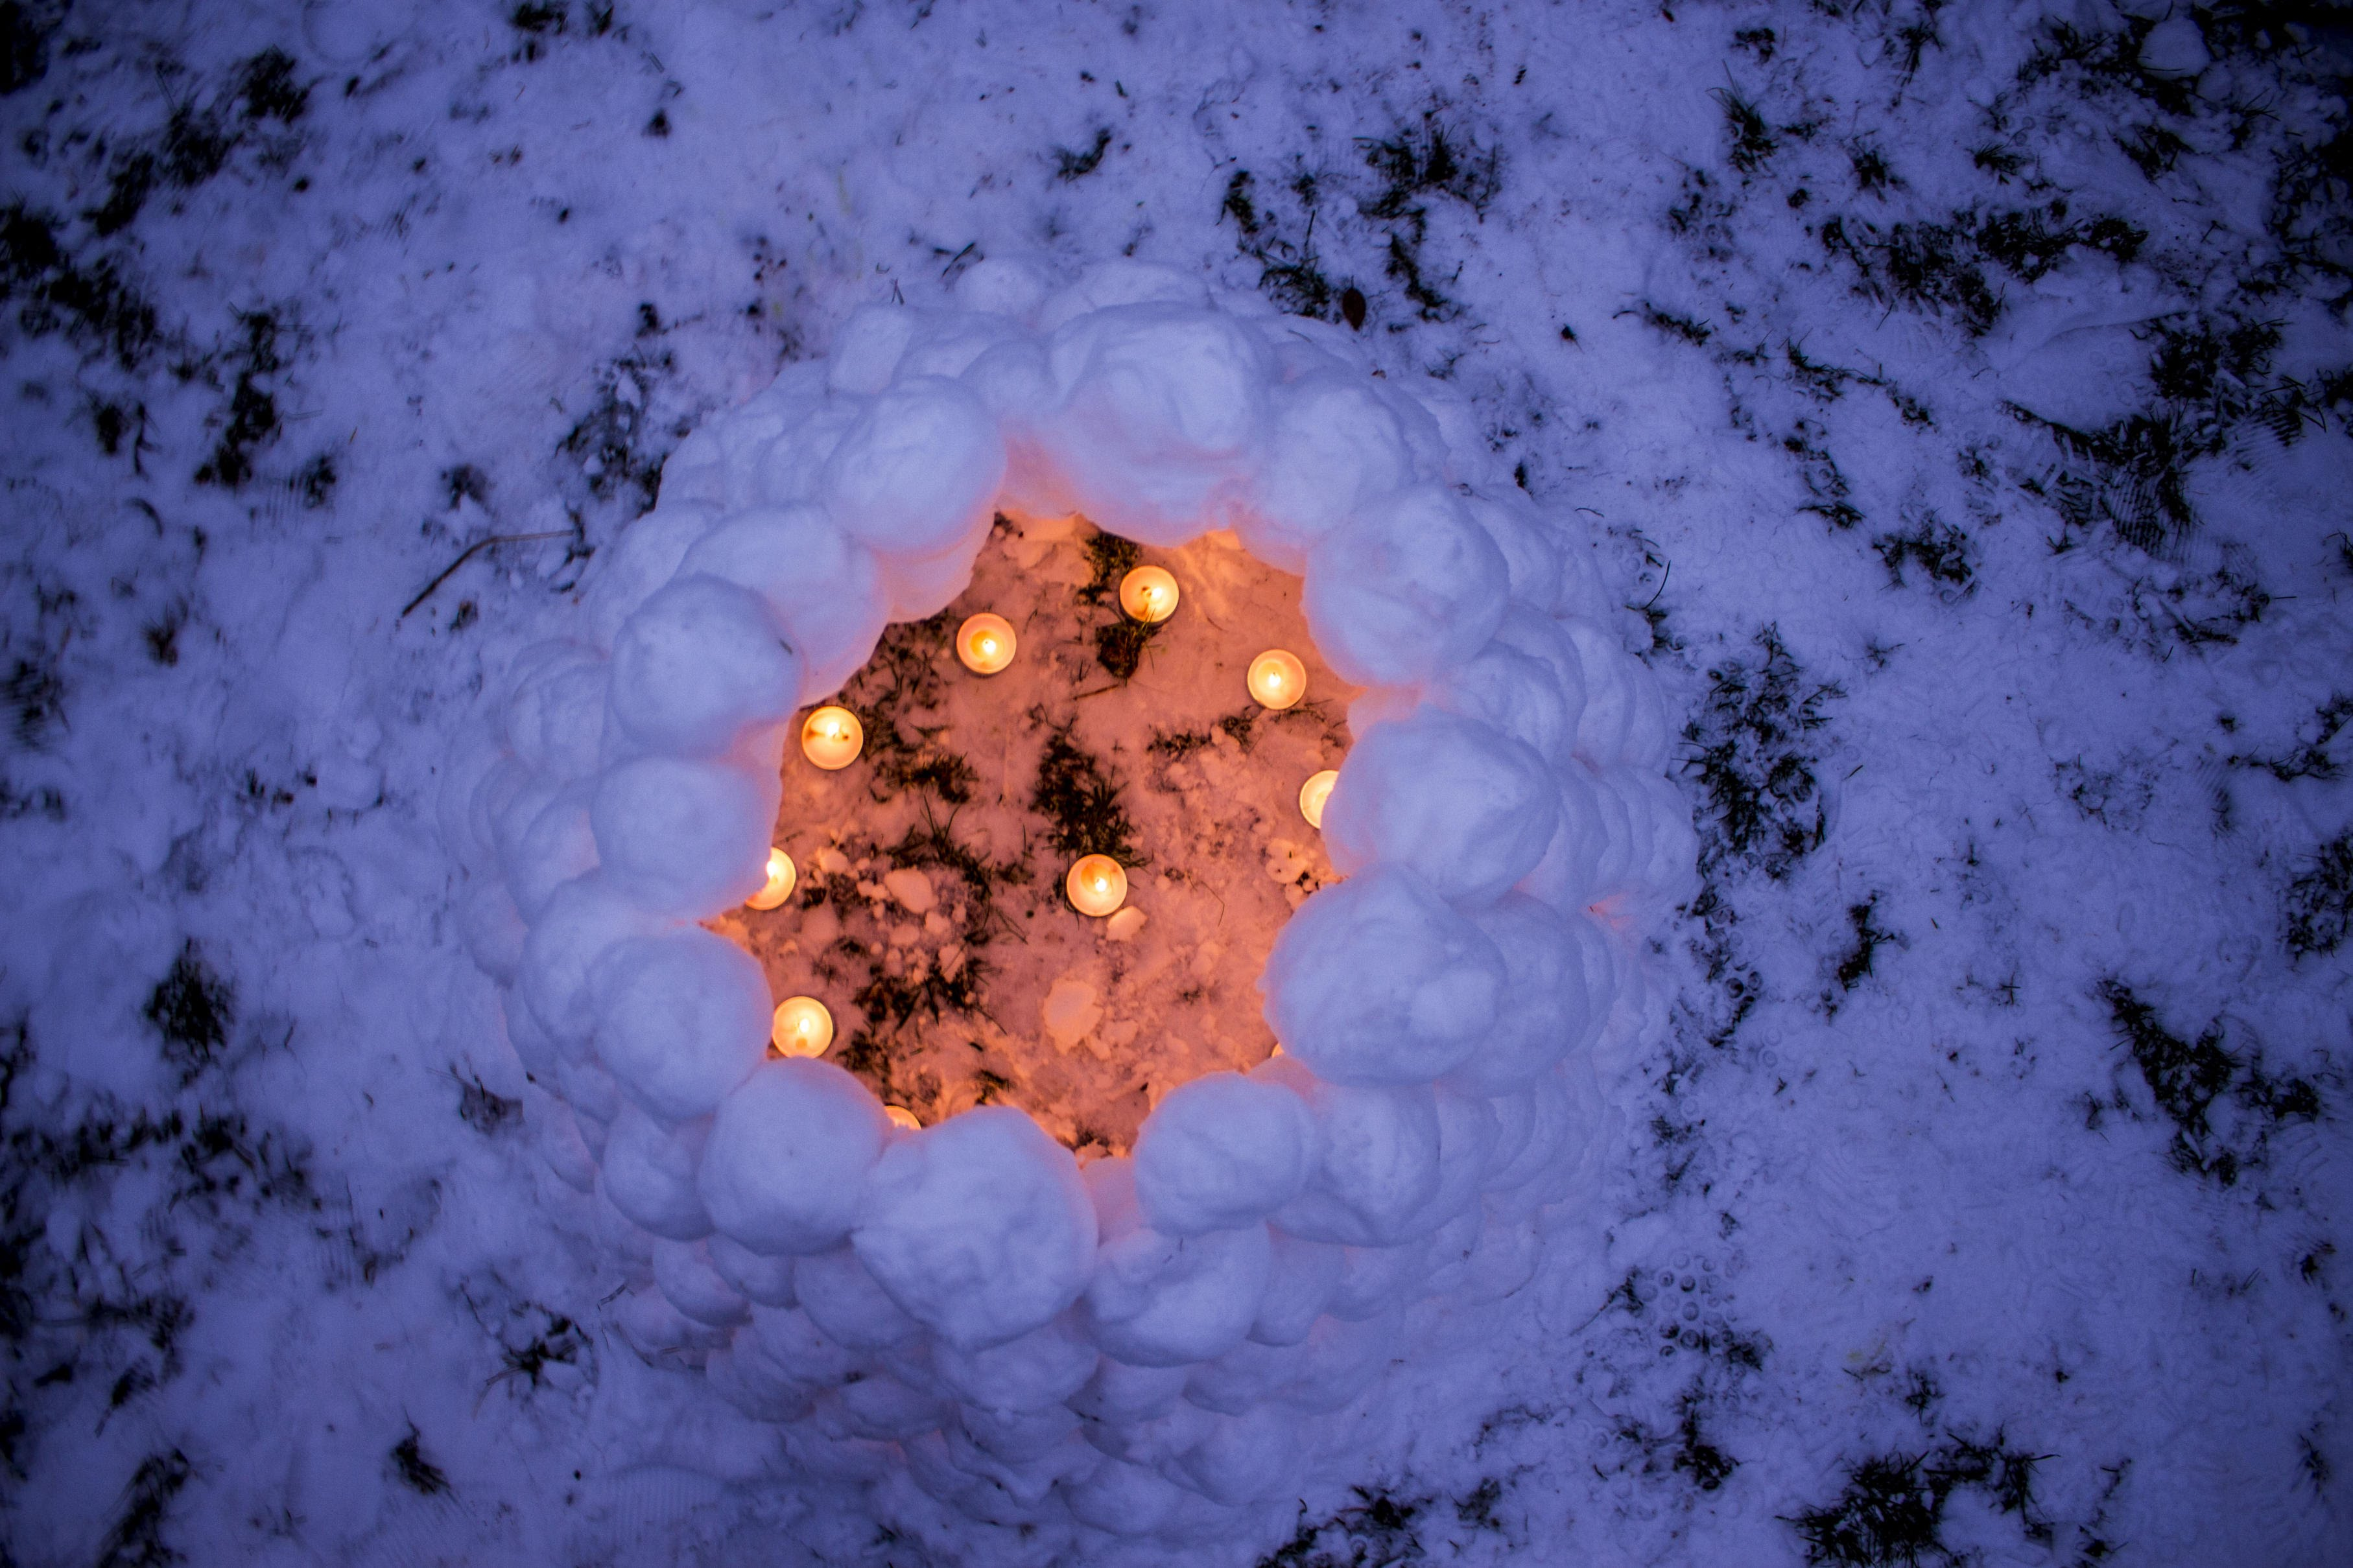 snow lantern from above